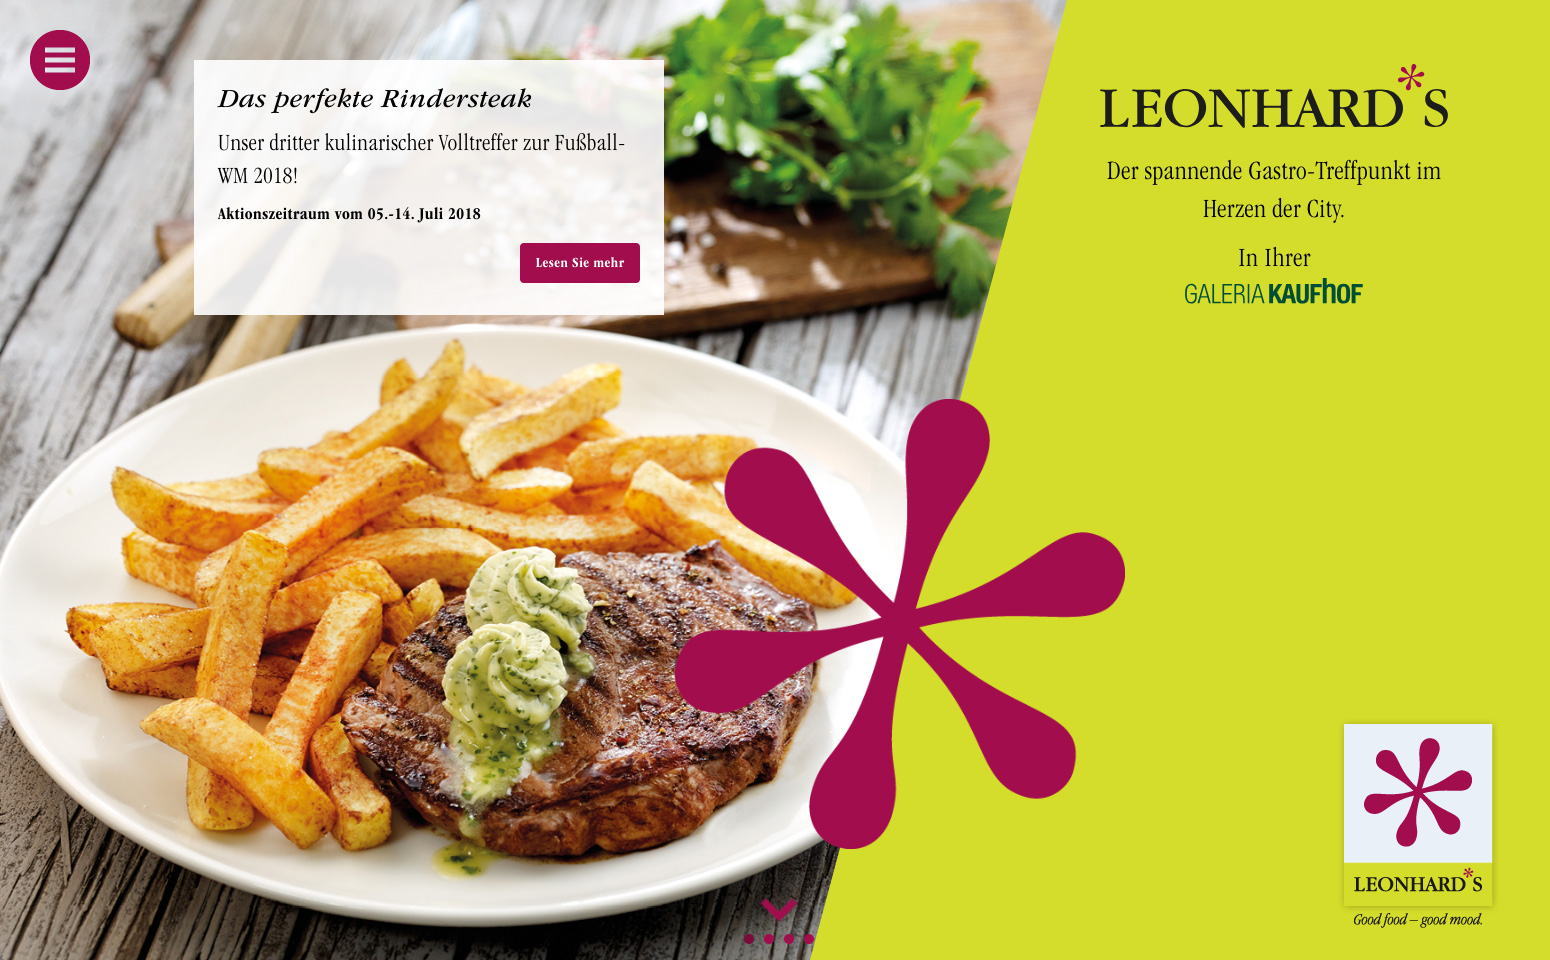 Leonhard's Restaurants